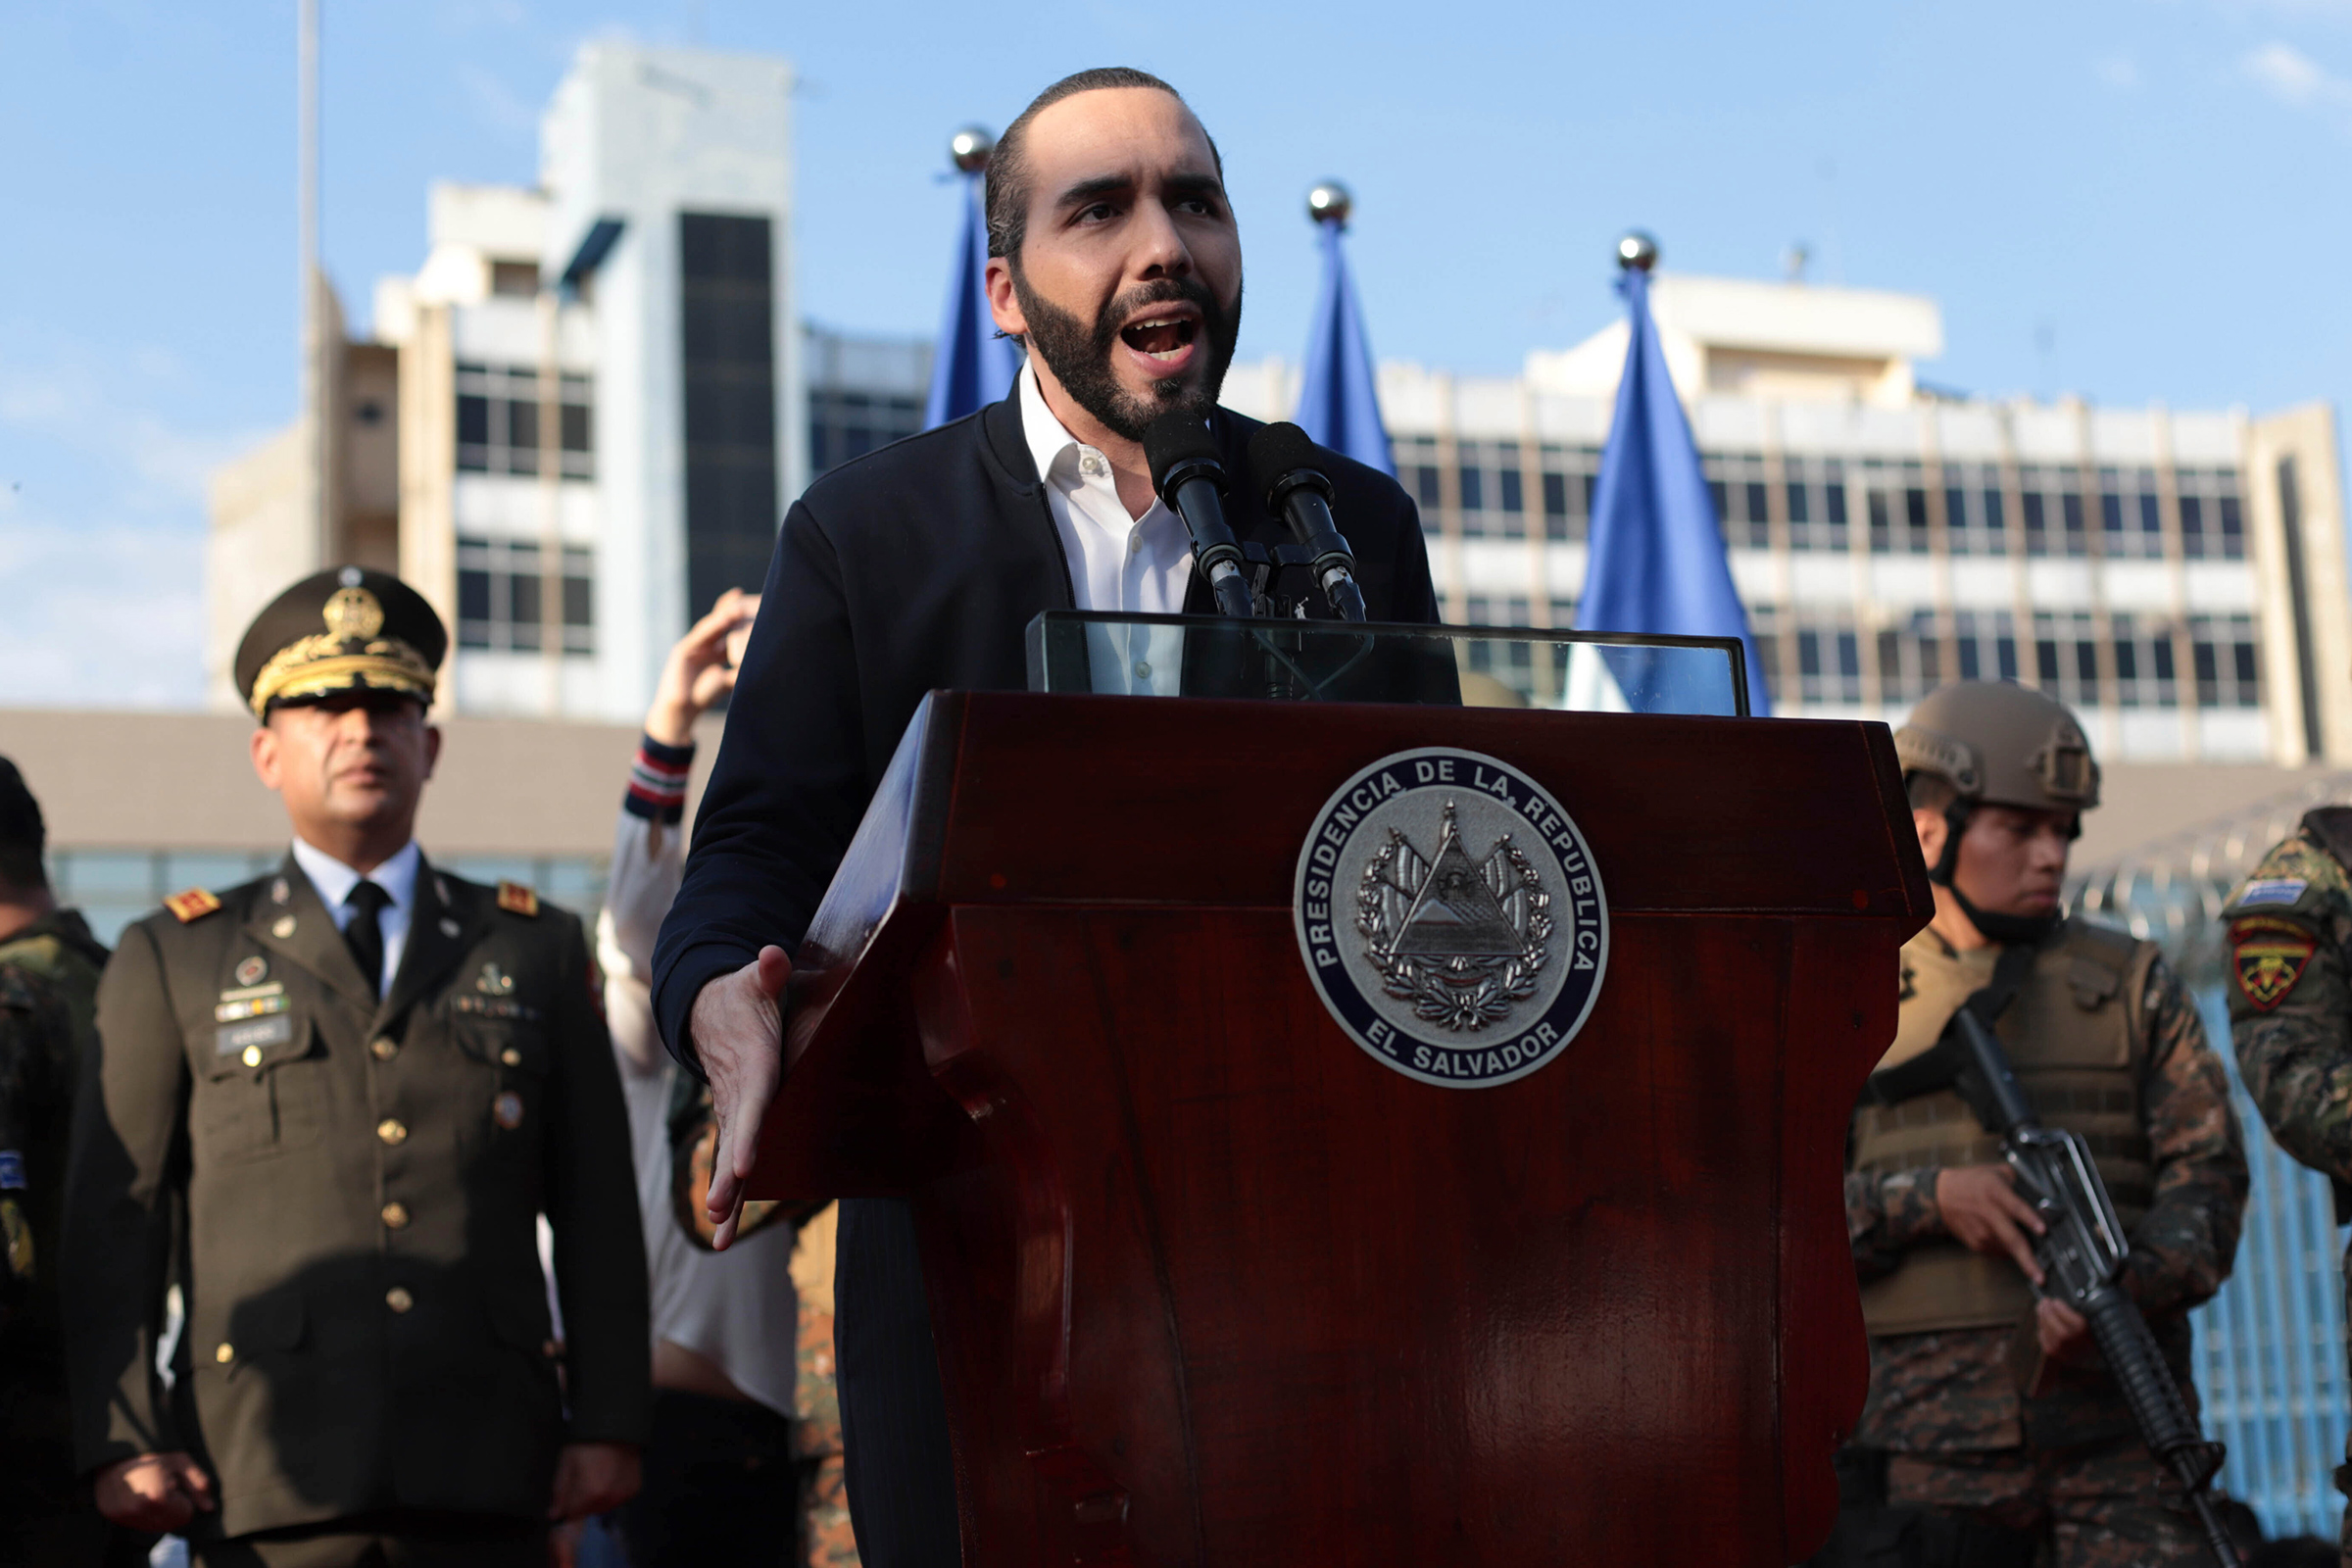 El Salvador's President Nayib Bukele, accompanied by members of the armed forces, speaks to his supporters outside Congress in San Salvador on Feb. 9. Bukele's party has swept all three main opposition parties during 2021's midterm elections, giving him a mandate to change the way politics are run in the central American country.